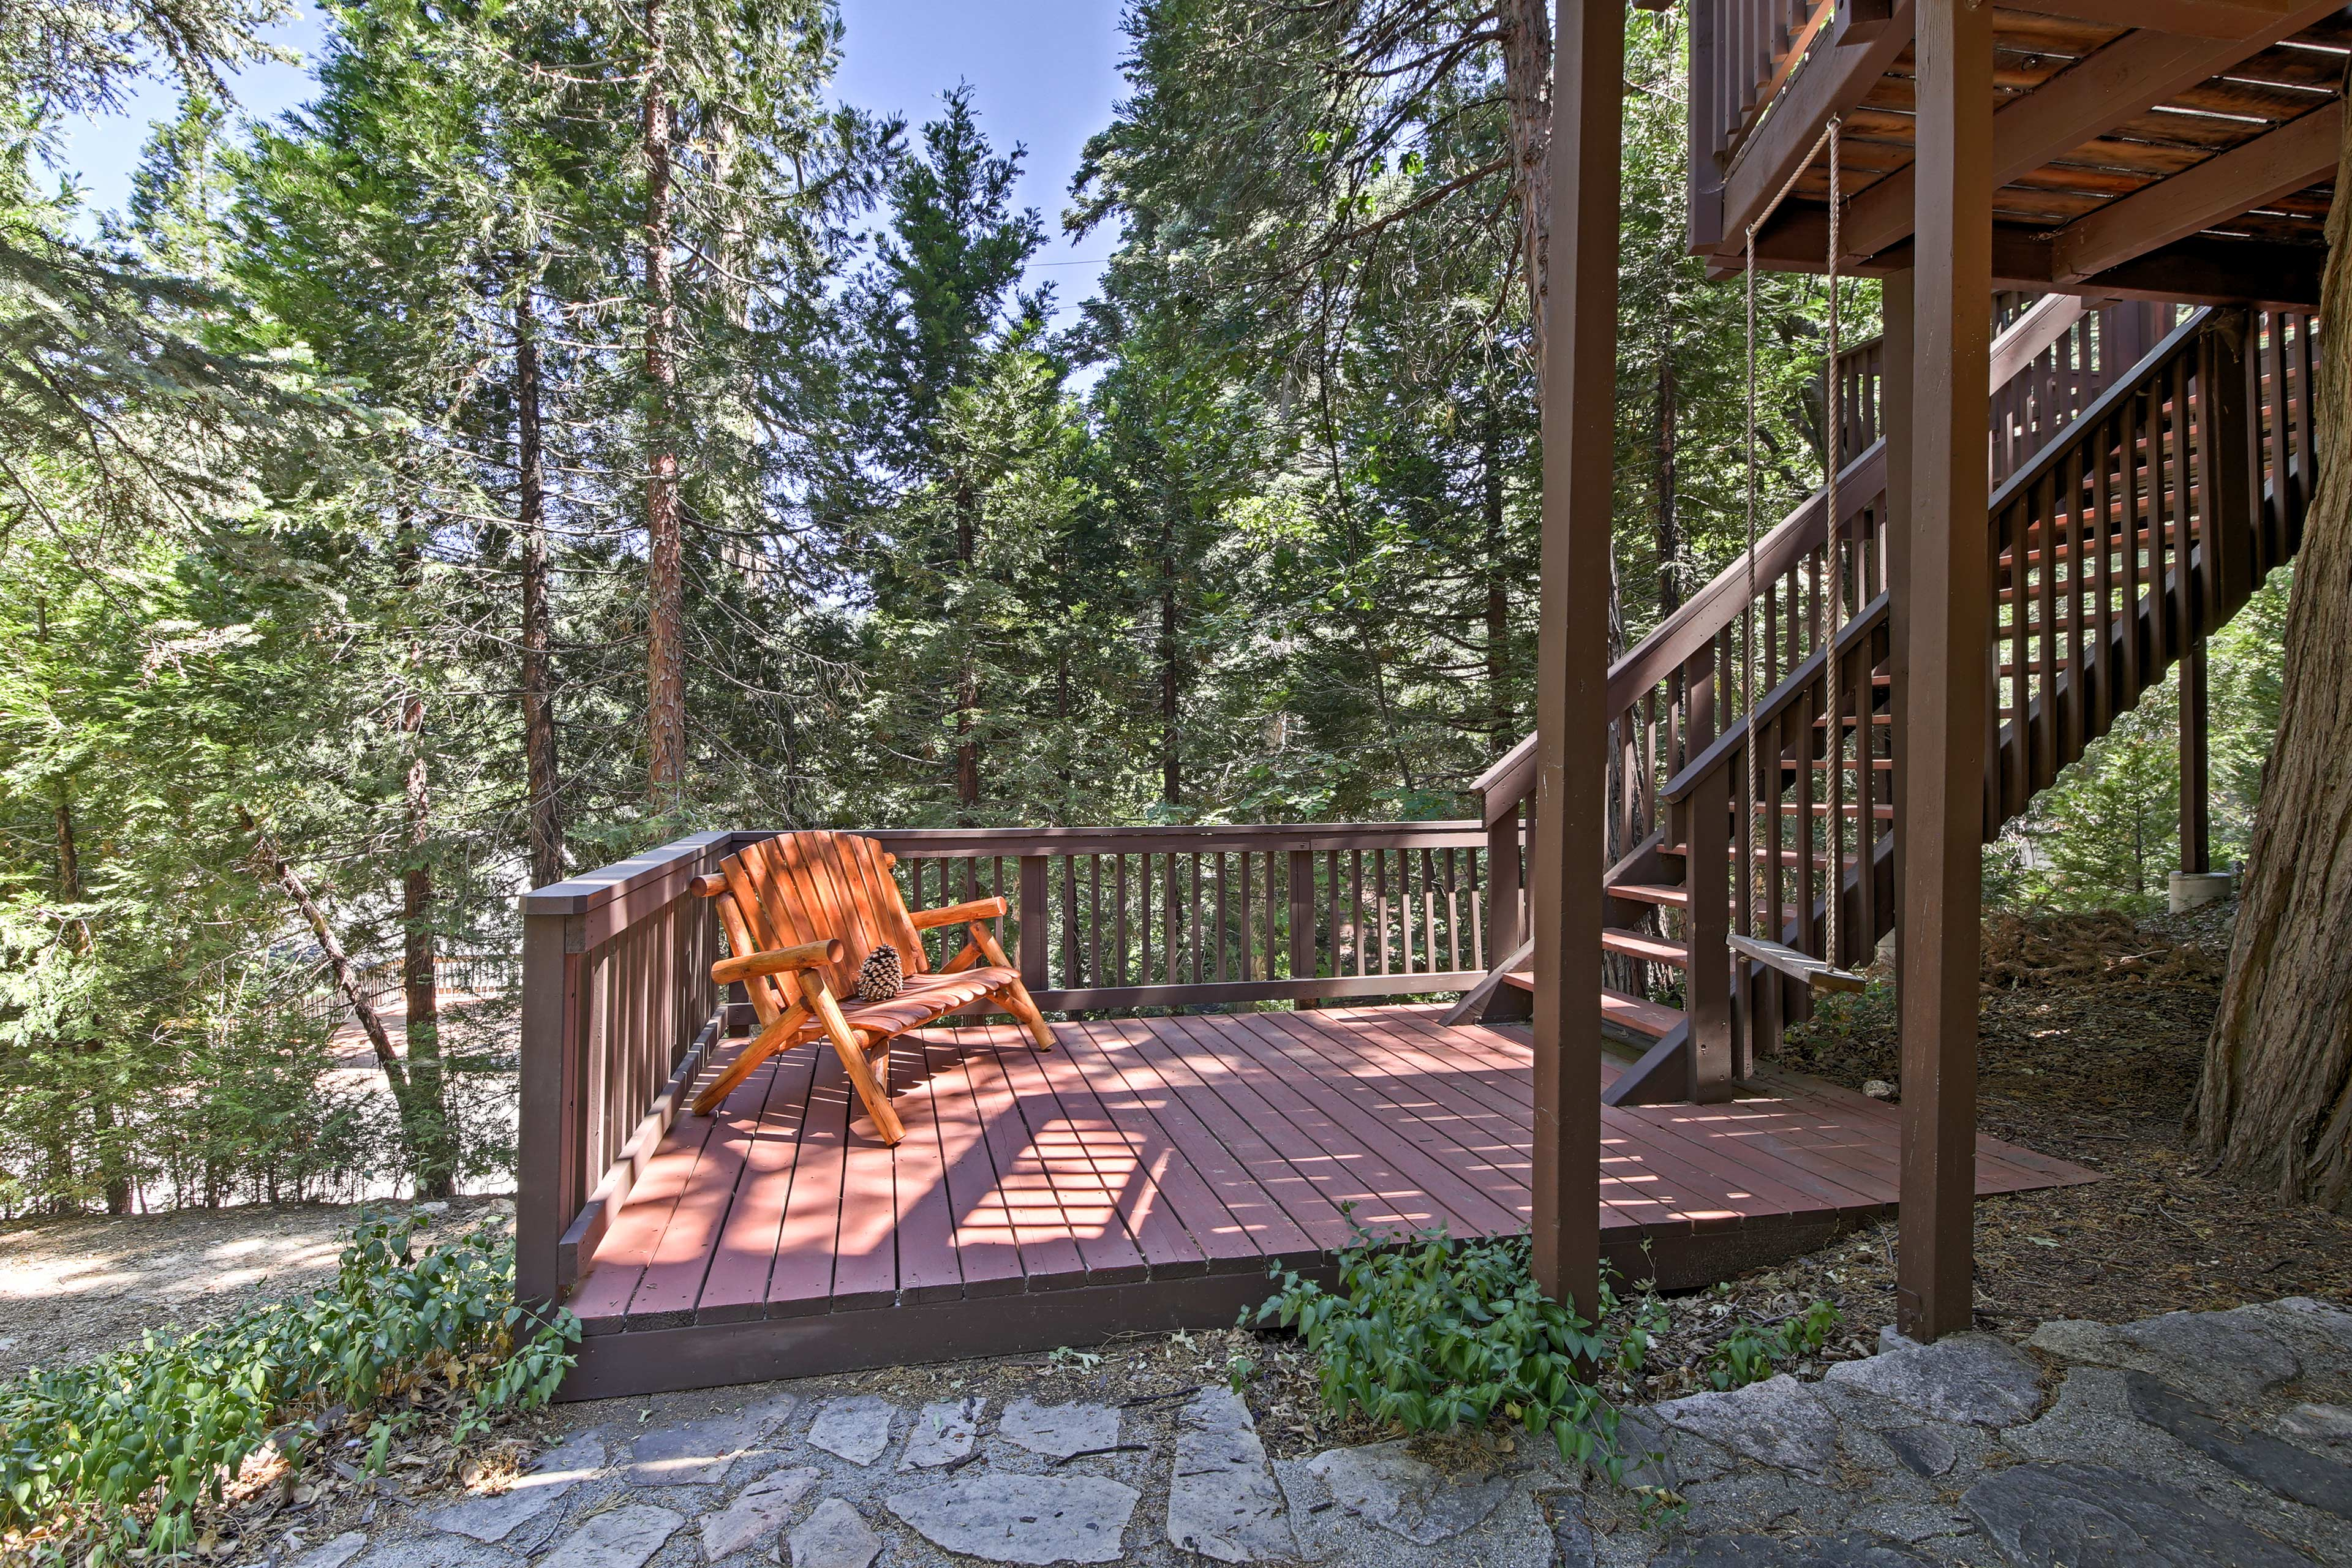 A swing and bench furnish the lower level of the deck.